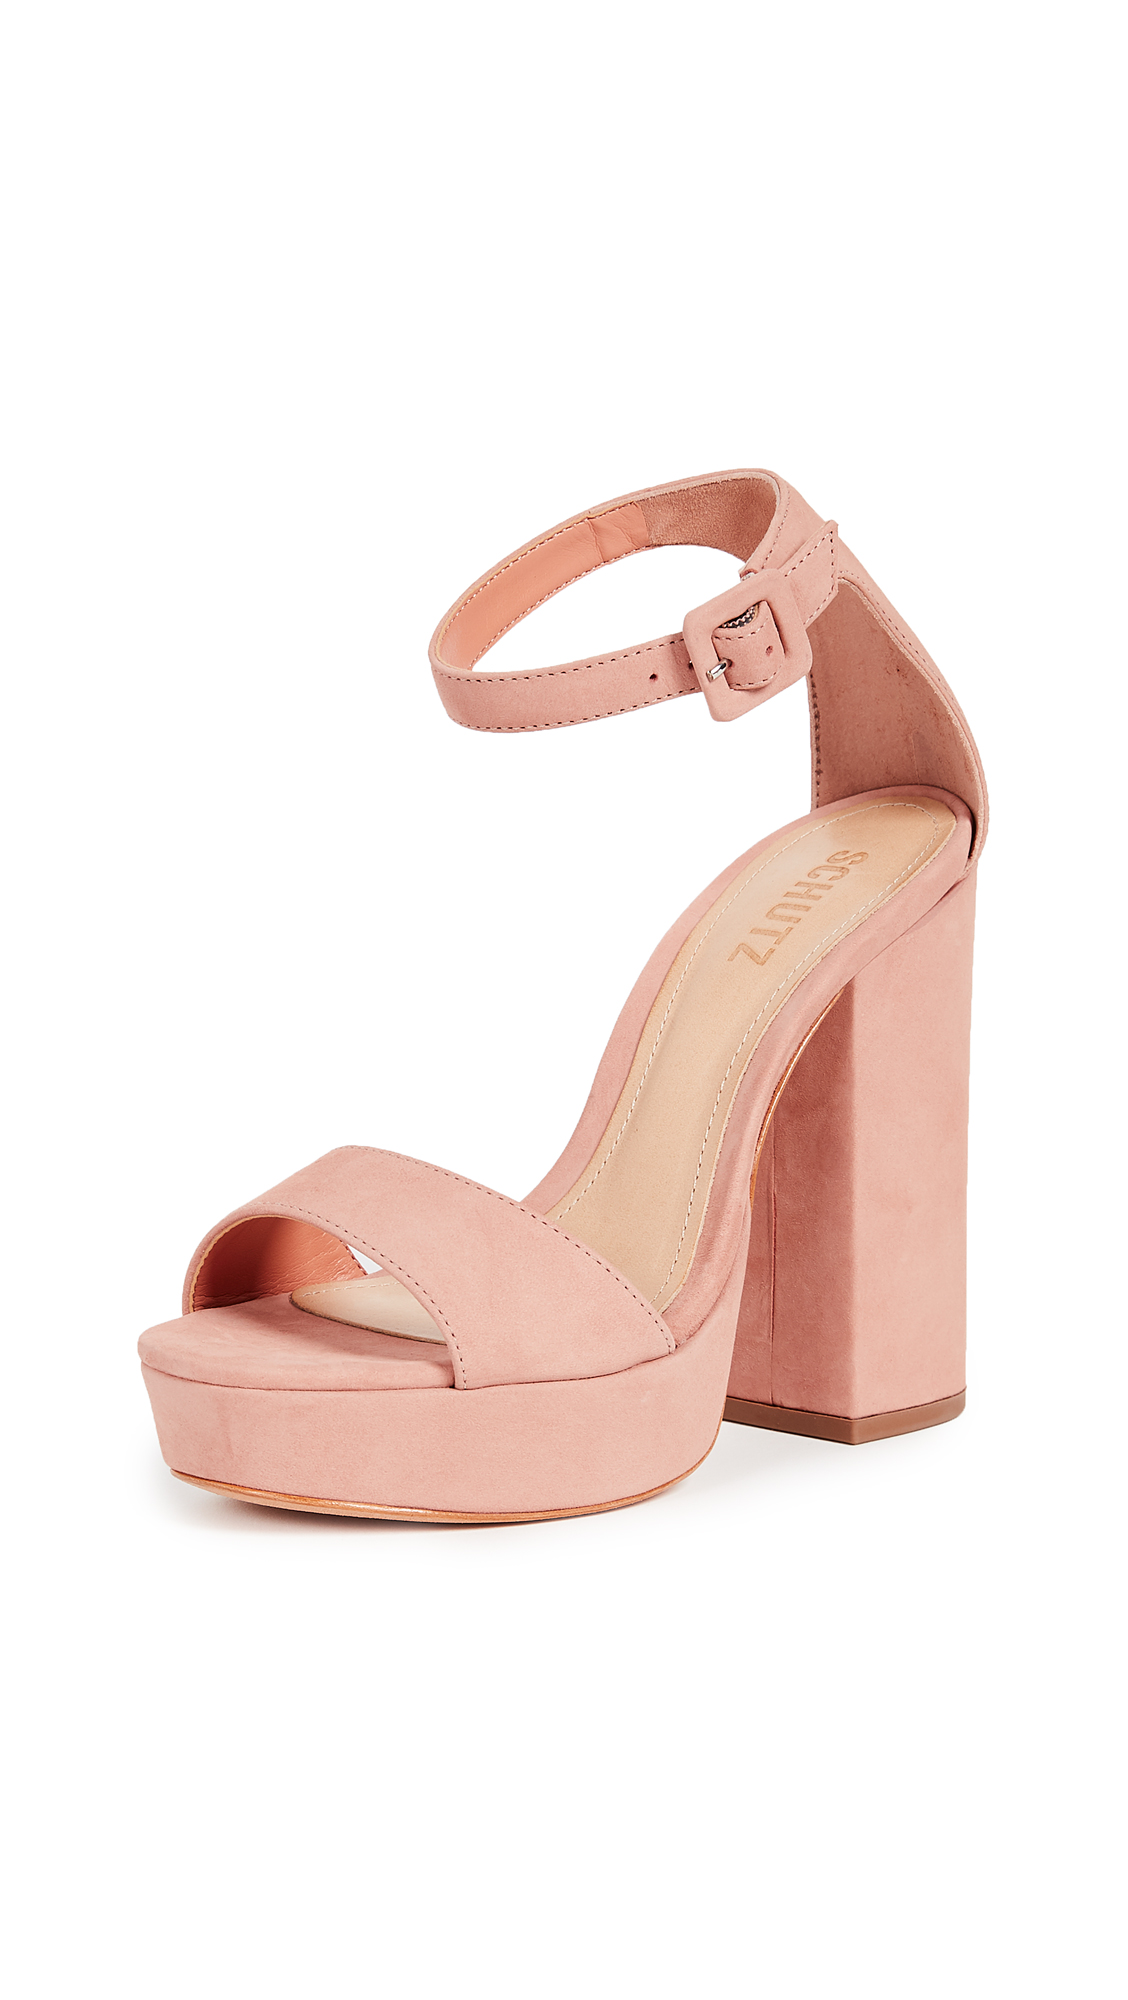 Schutz Mikella Block Heel Sandals - Belle Rose